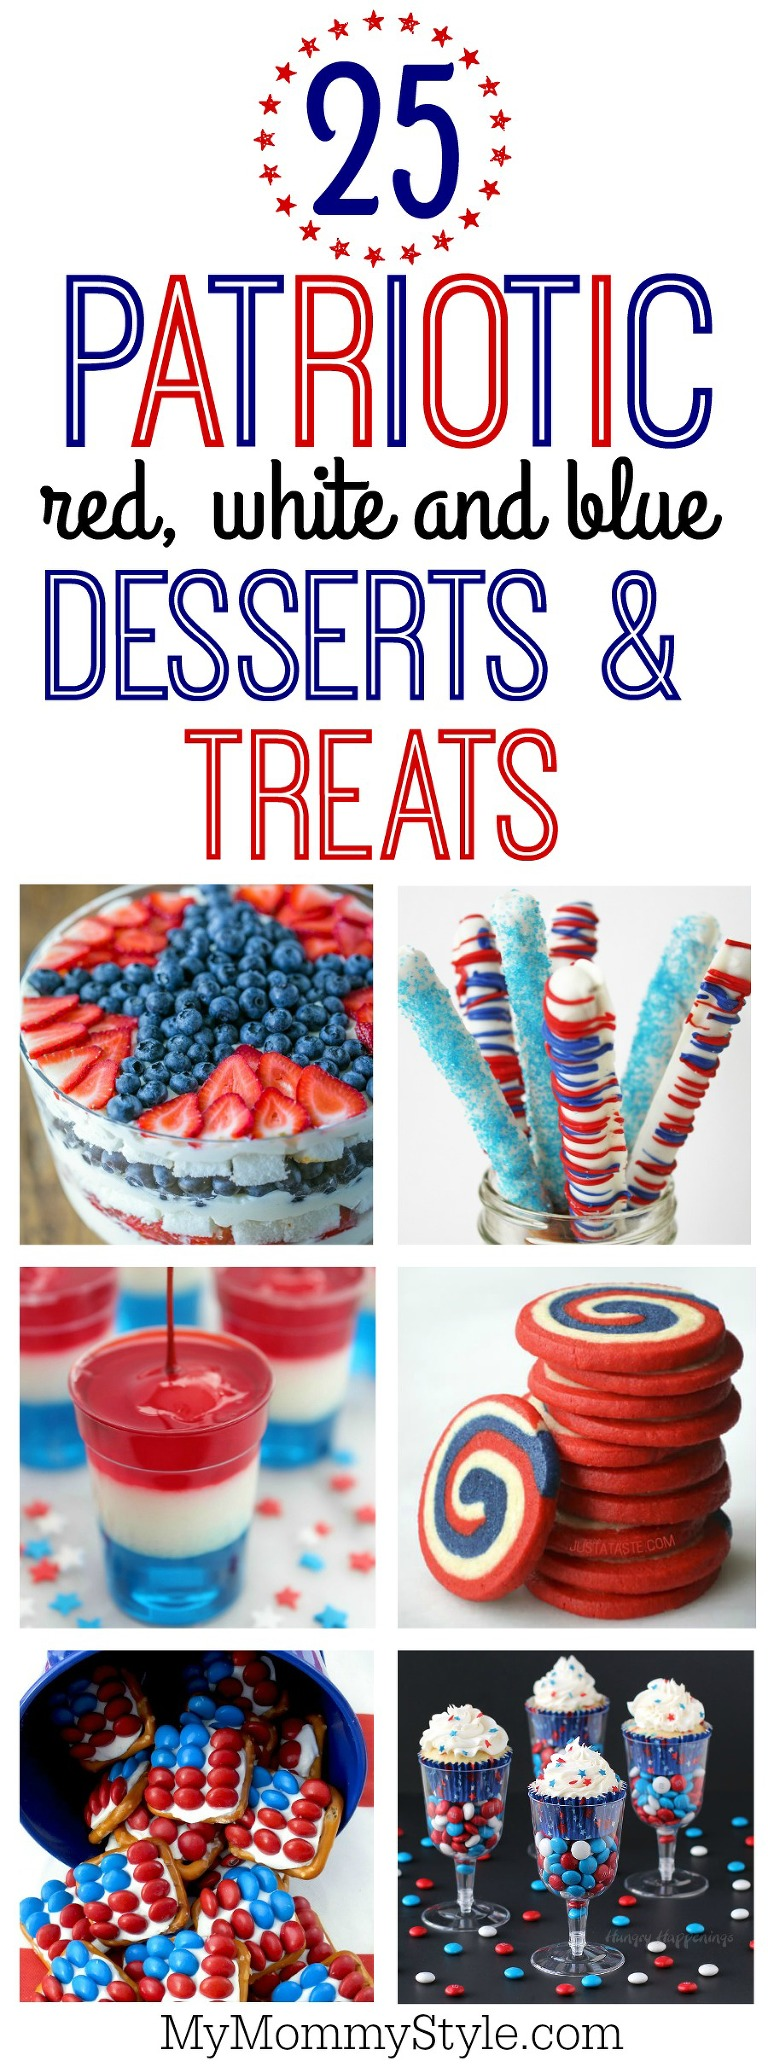 25 red, white and blue desserts and treats